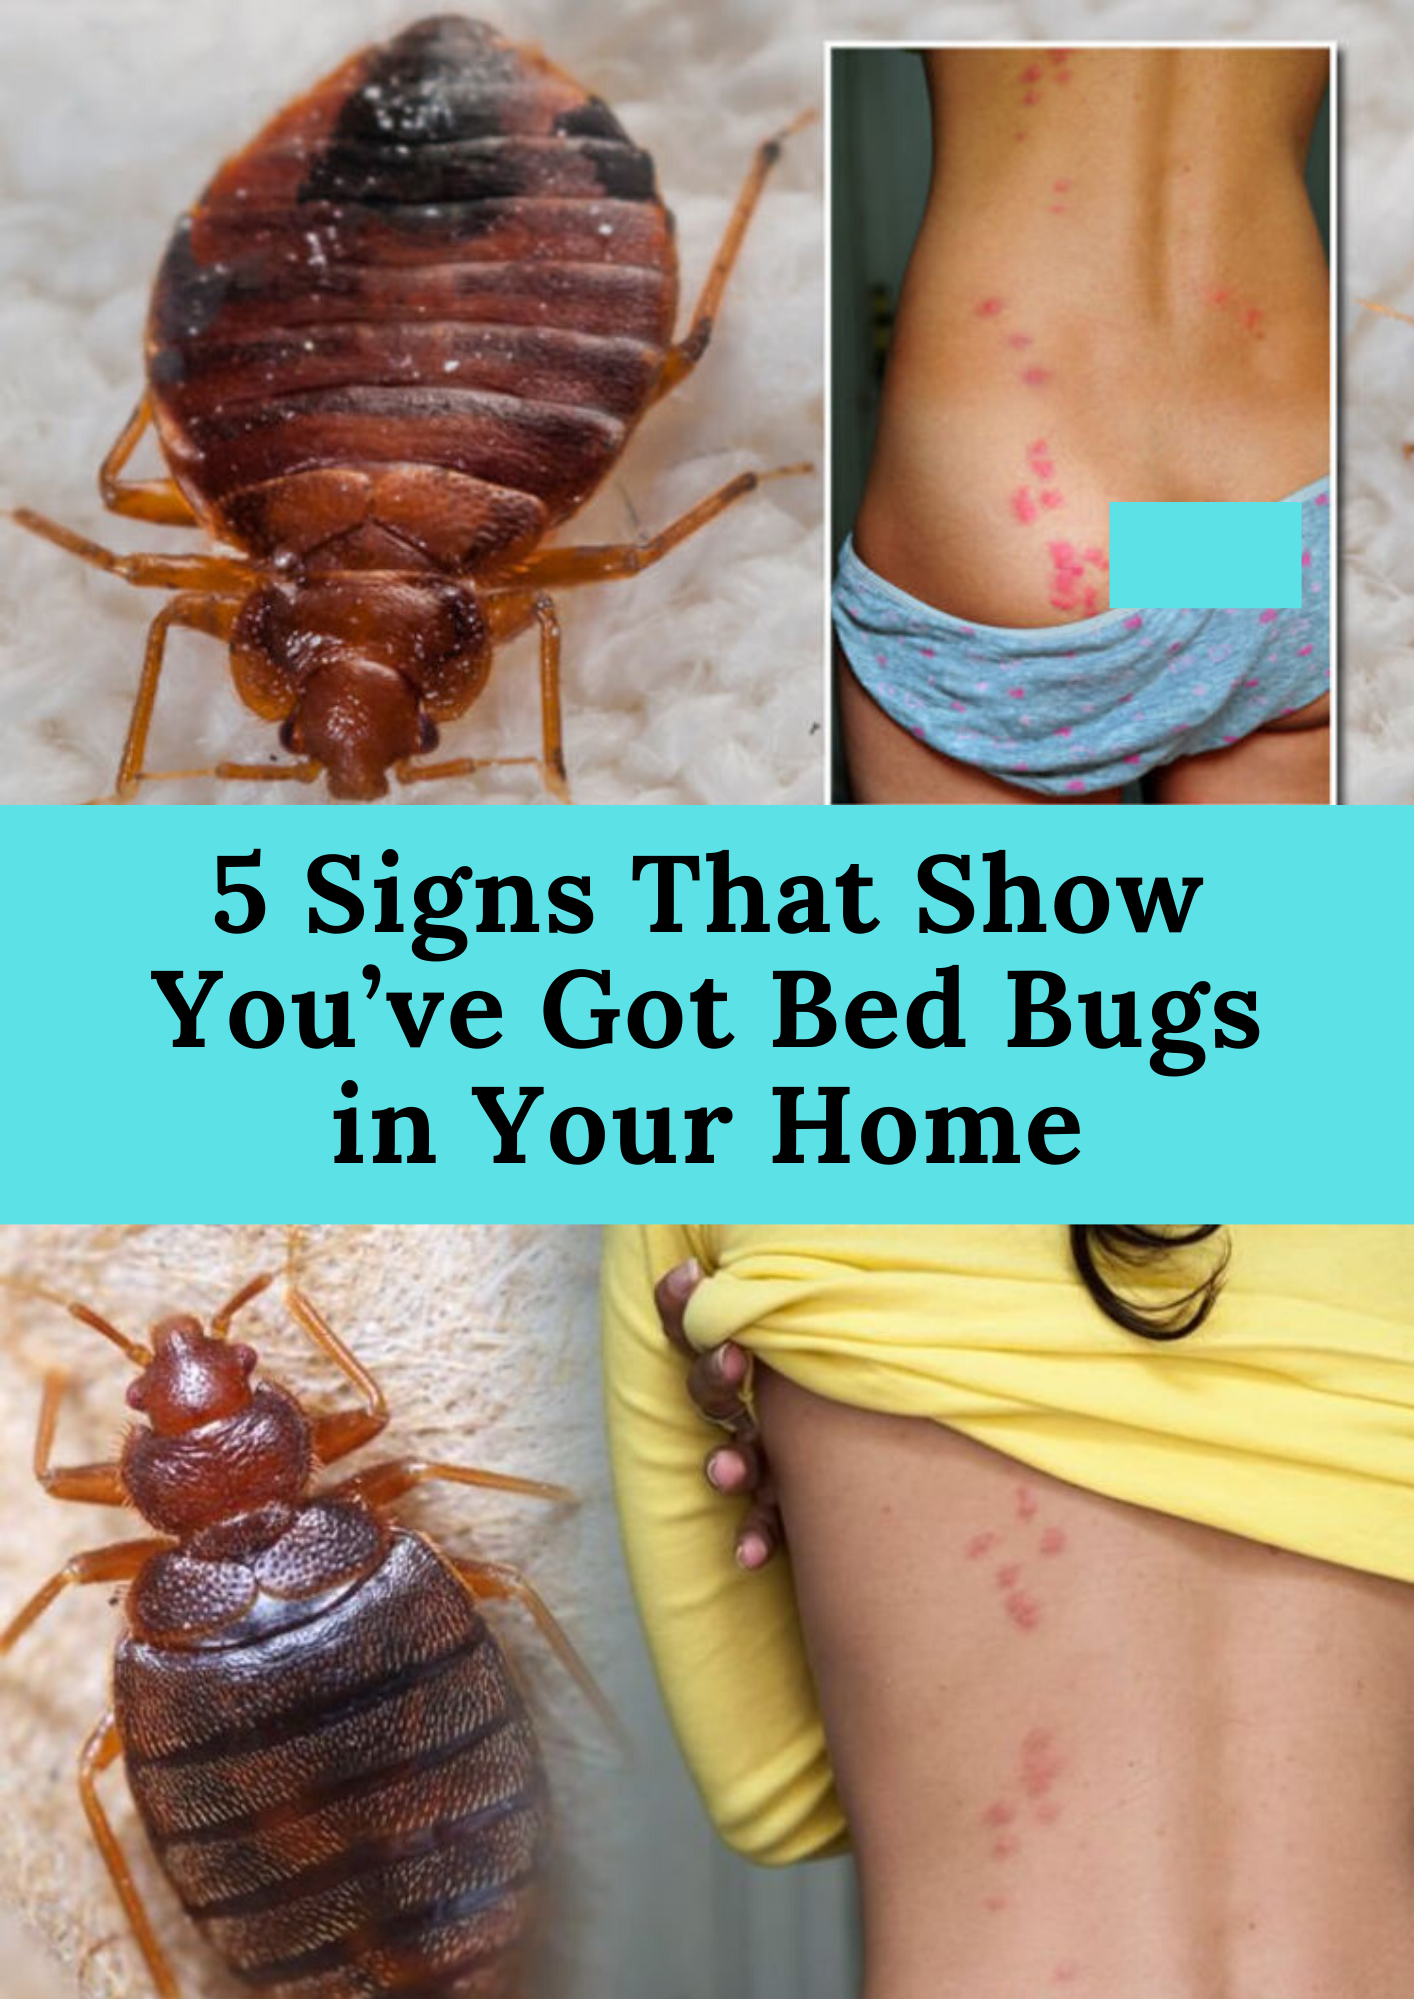 5 Signs That Show You've Got Bed Bugs in Your Home in 2020